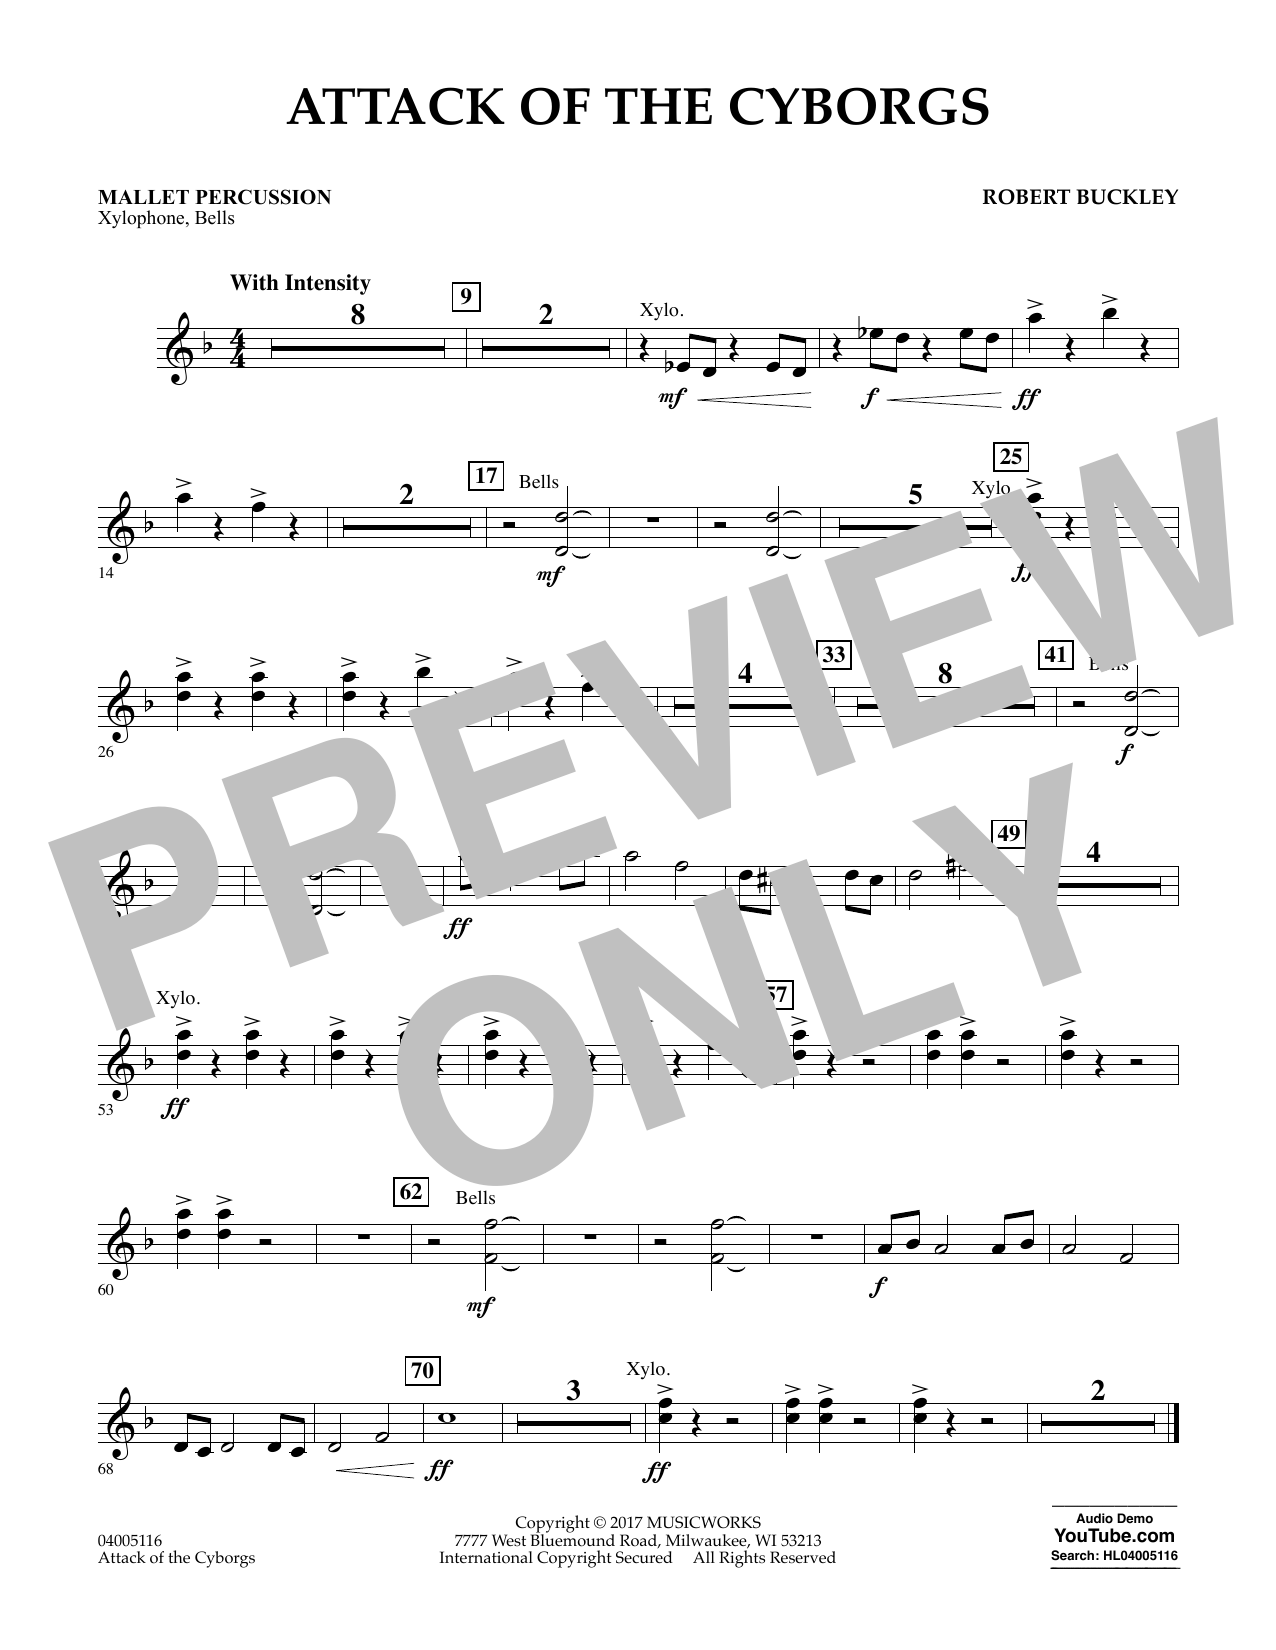 Attack of the Cyborgs - Mallet Percussion Sheet Music